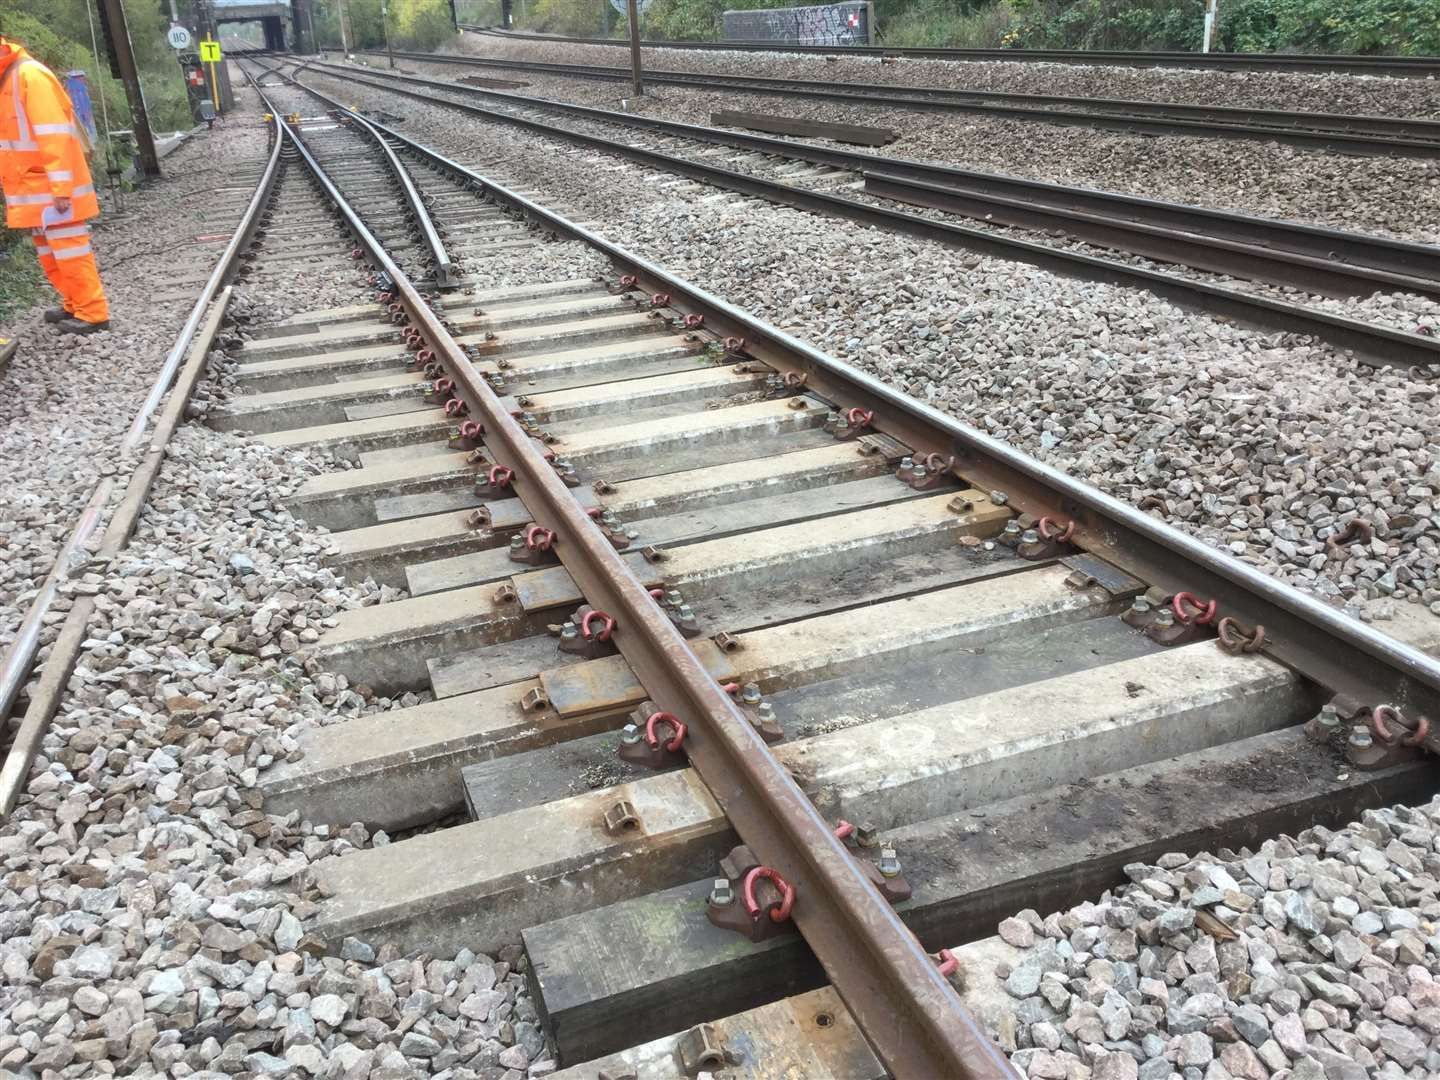 A full service has now resumed after the disruption on the ...